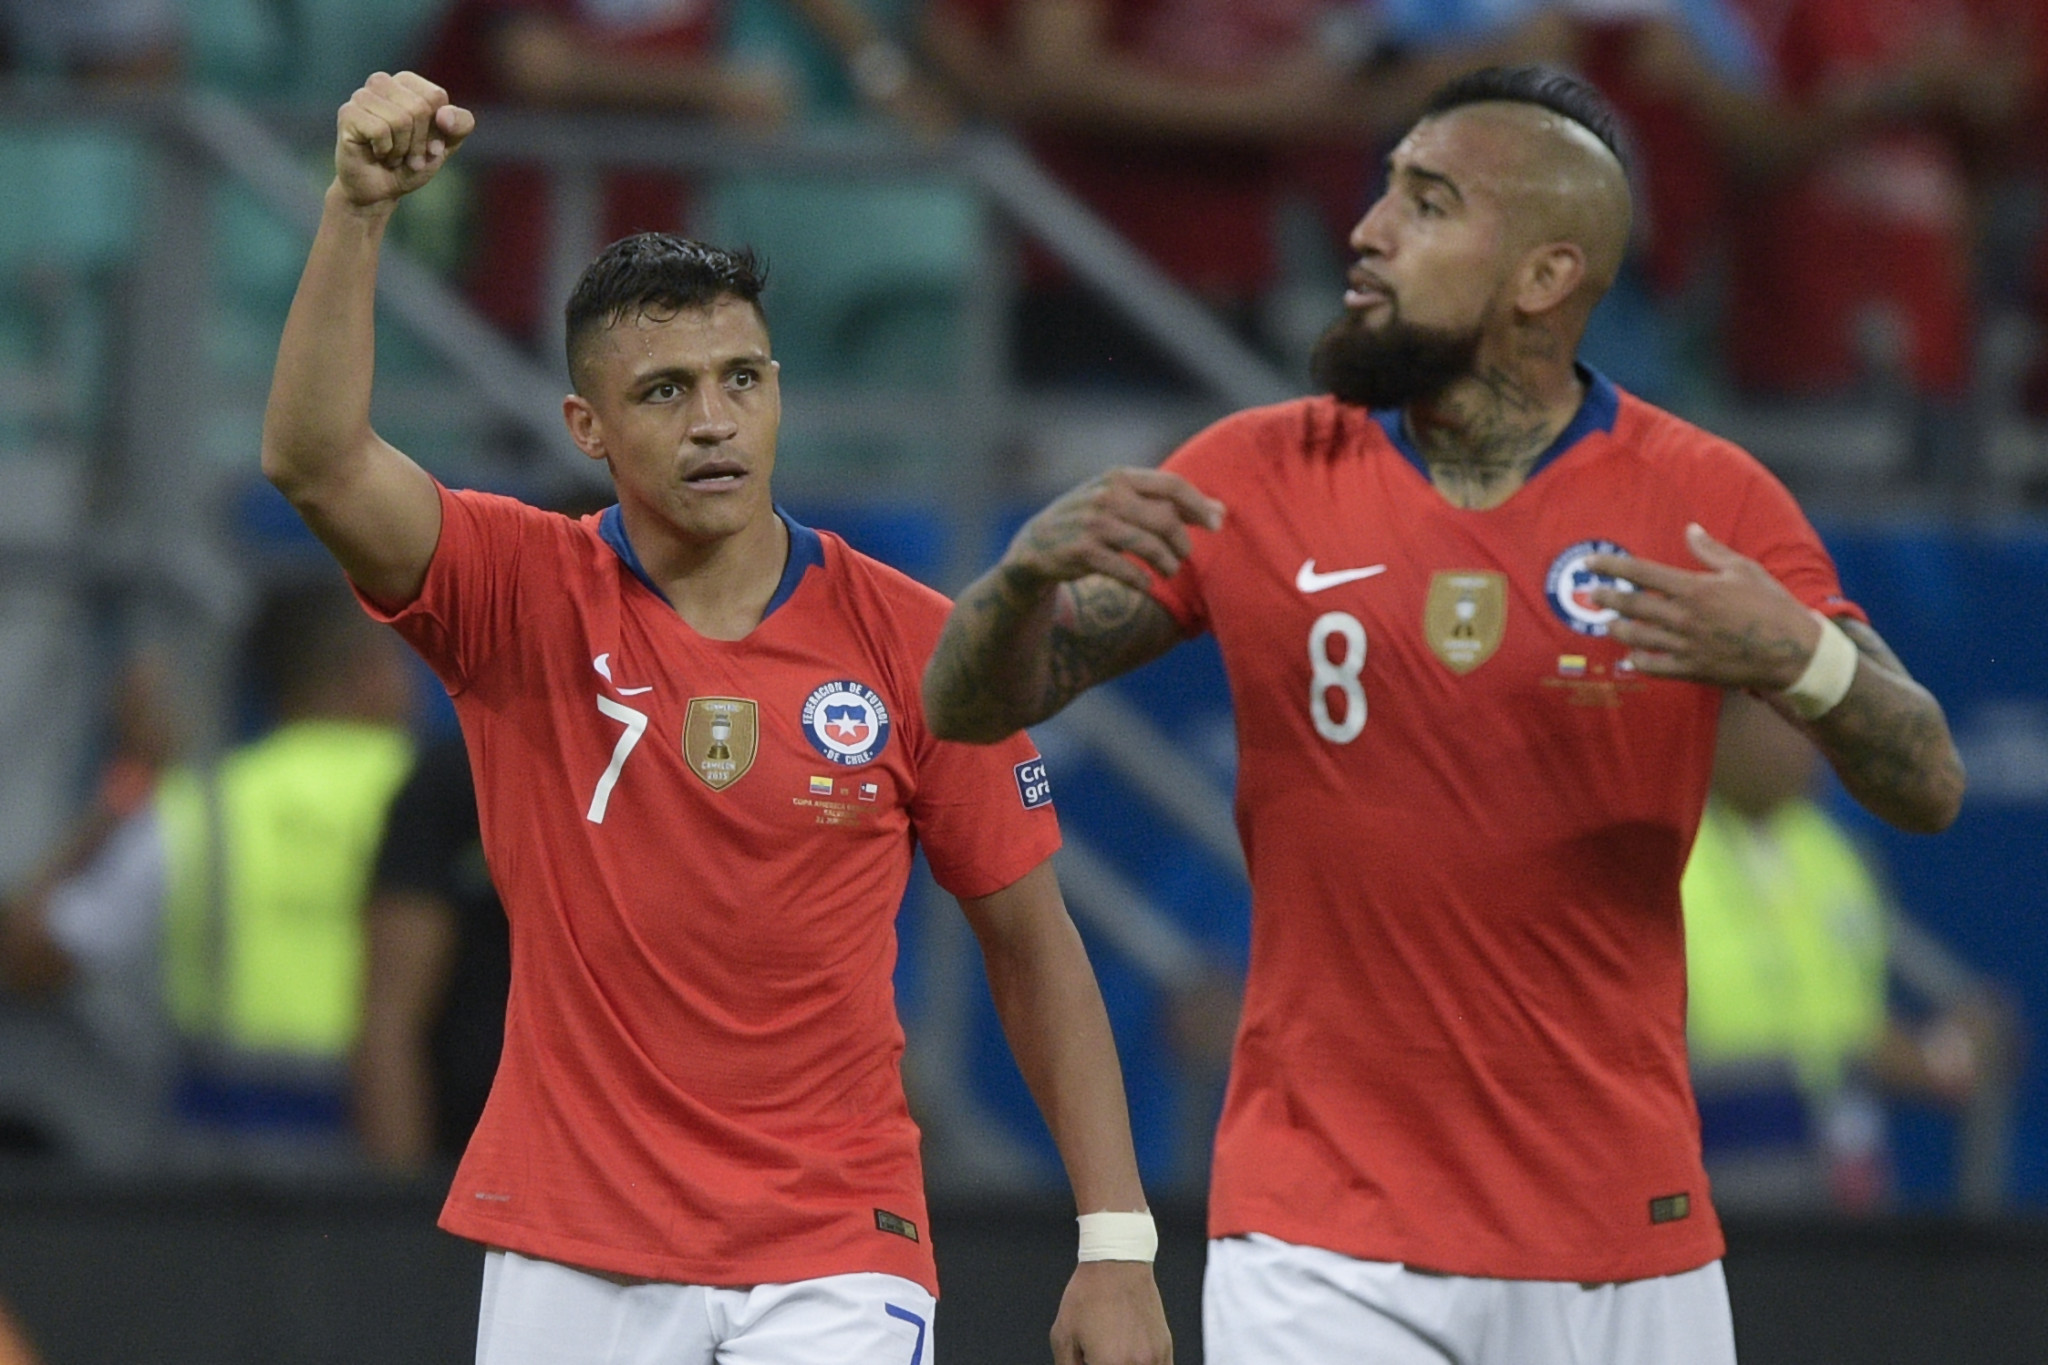 Alexis Sánchez scored in a second successive match as Chile qualified for the quarter-finals of the Copa América ©Getty Images